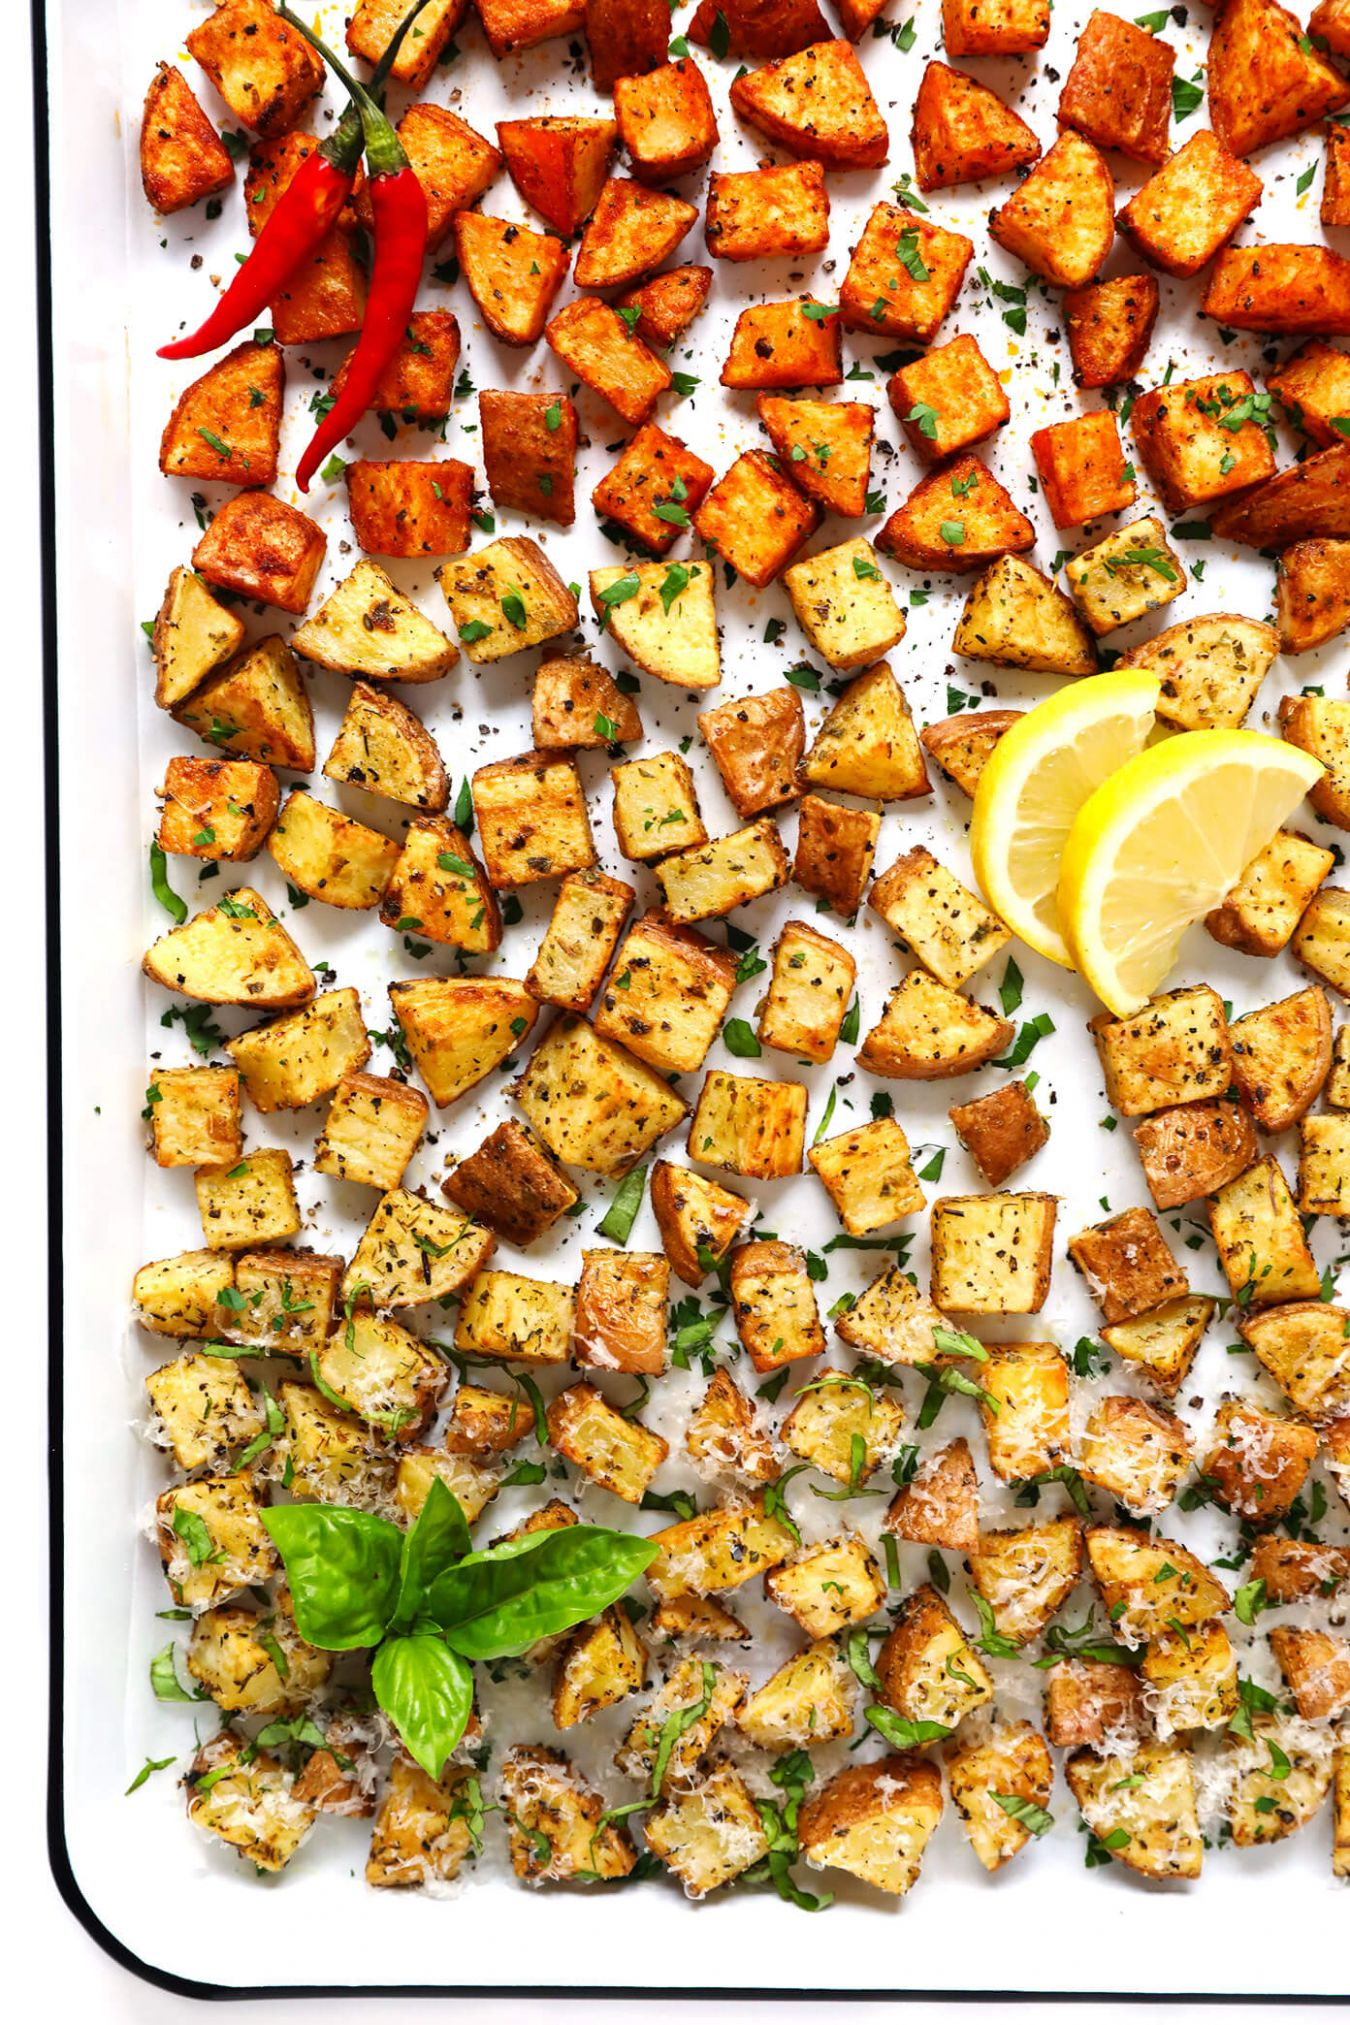 Crispy Roasted Potatoes (11 Ways!) - Potato Recipes Oven Baked